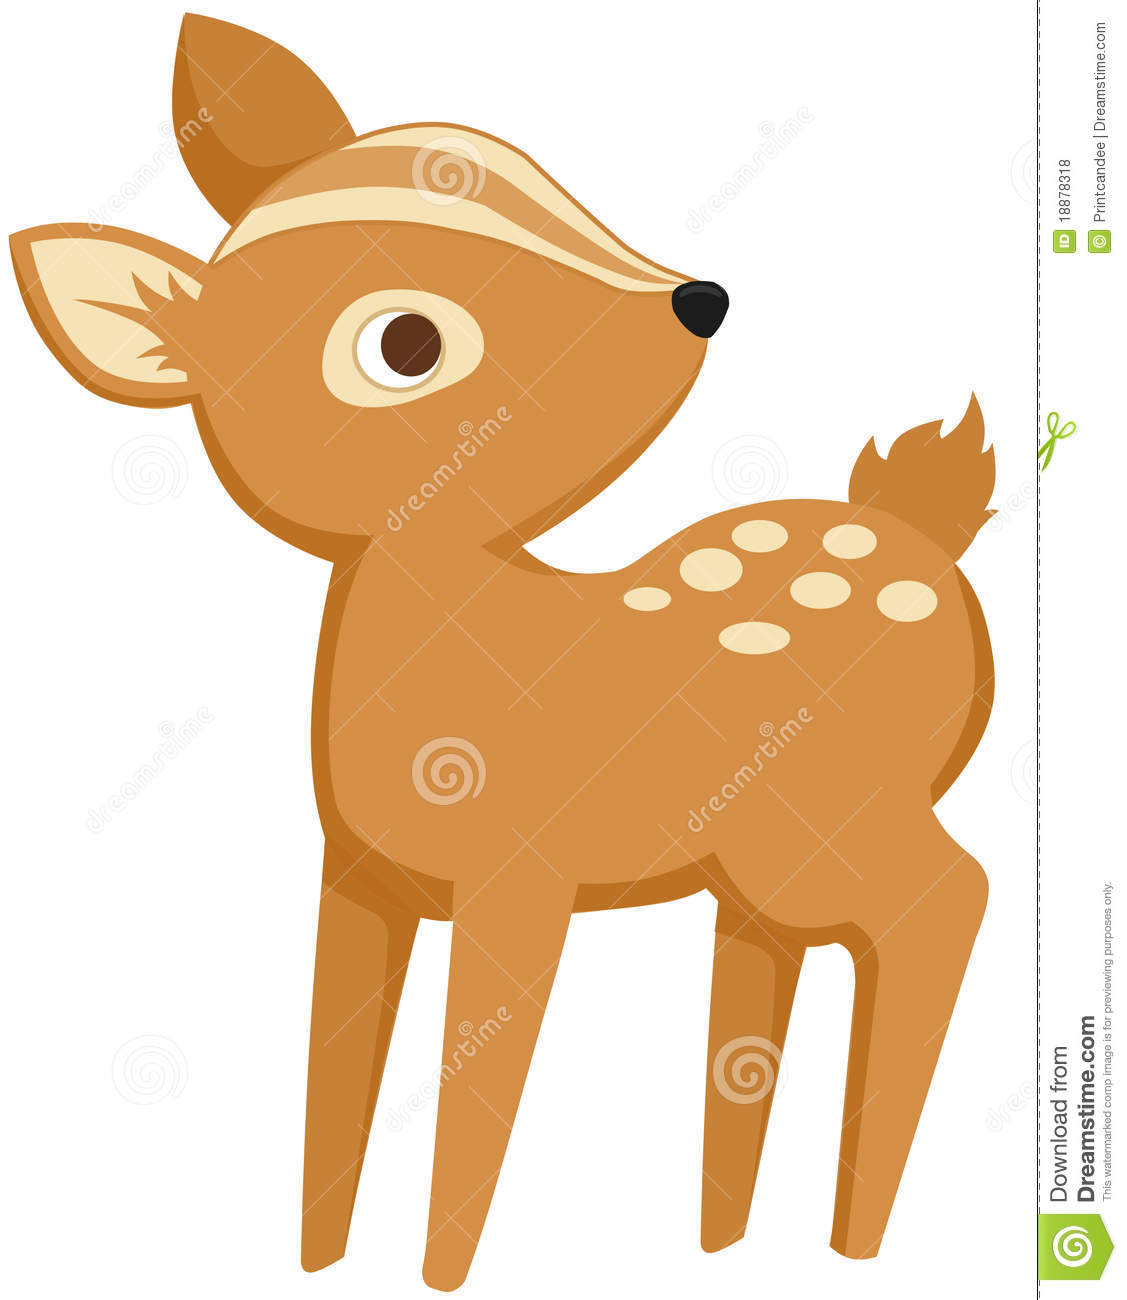 Baby buck clipart banner freeuse stock Baby Deer Clipart & Look At Clip Art Images - ClipartLook banner freeuse stock